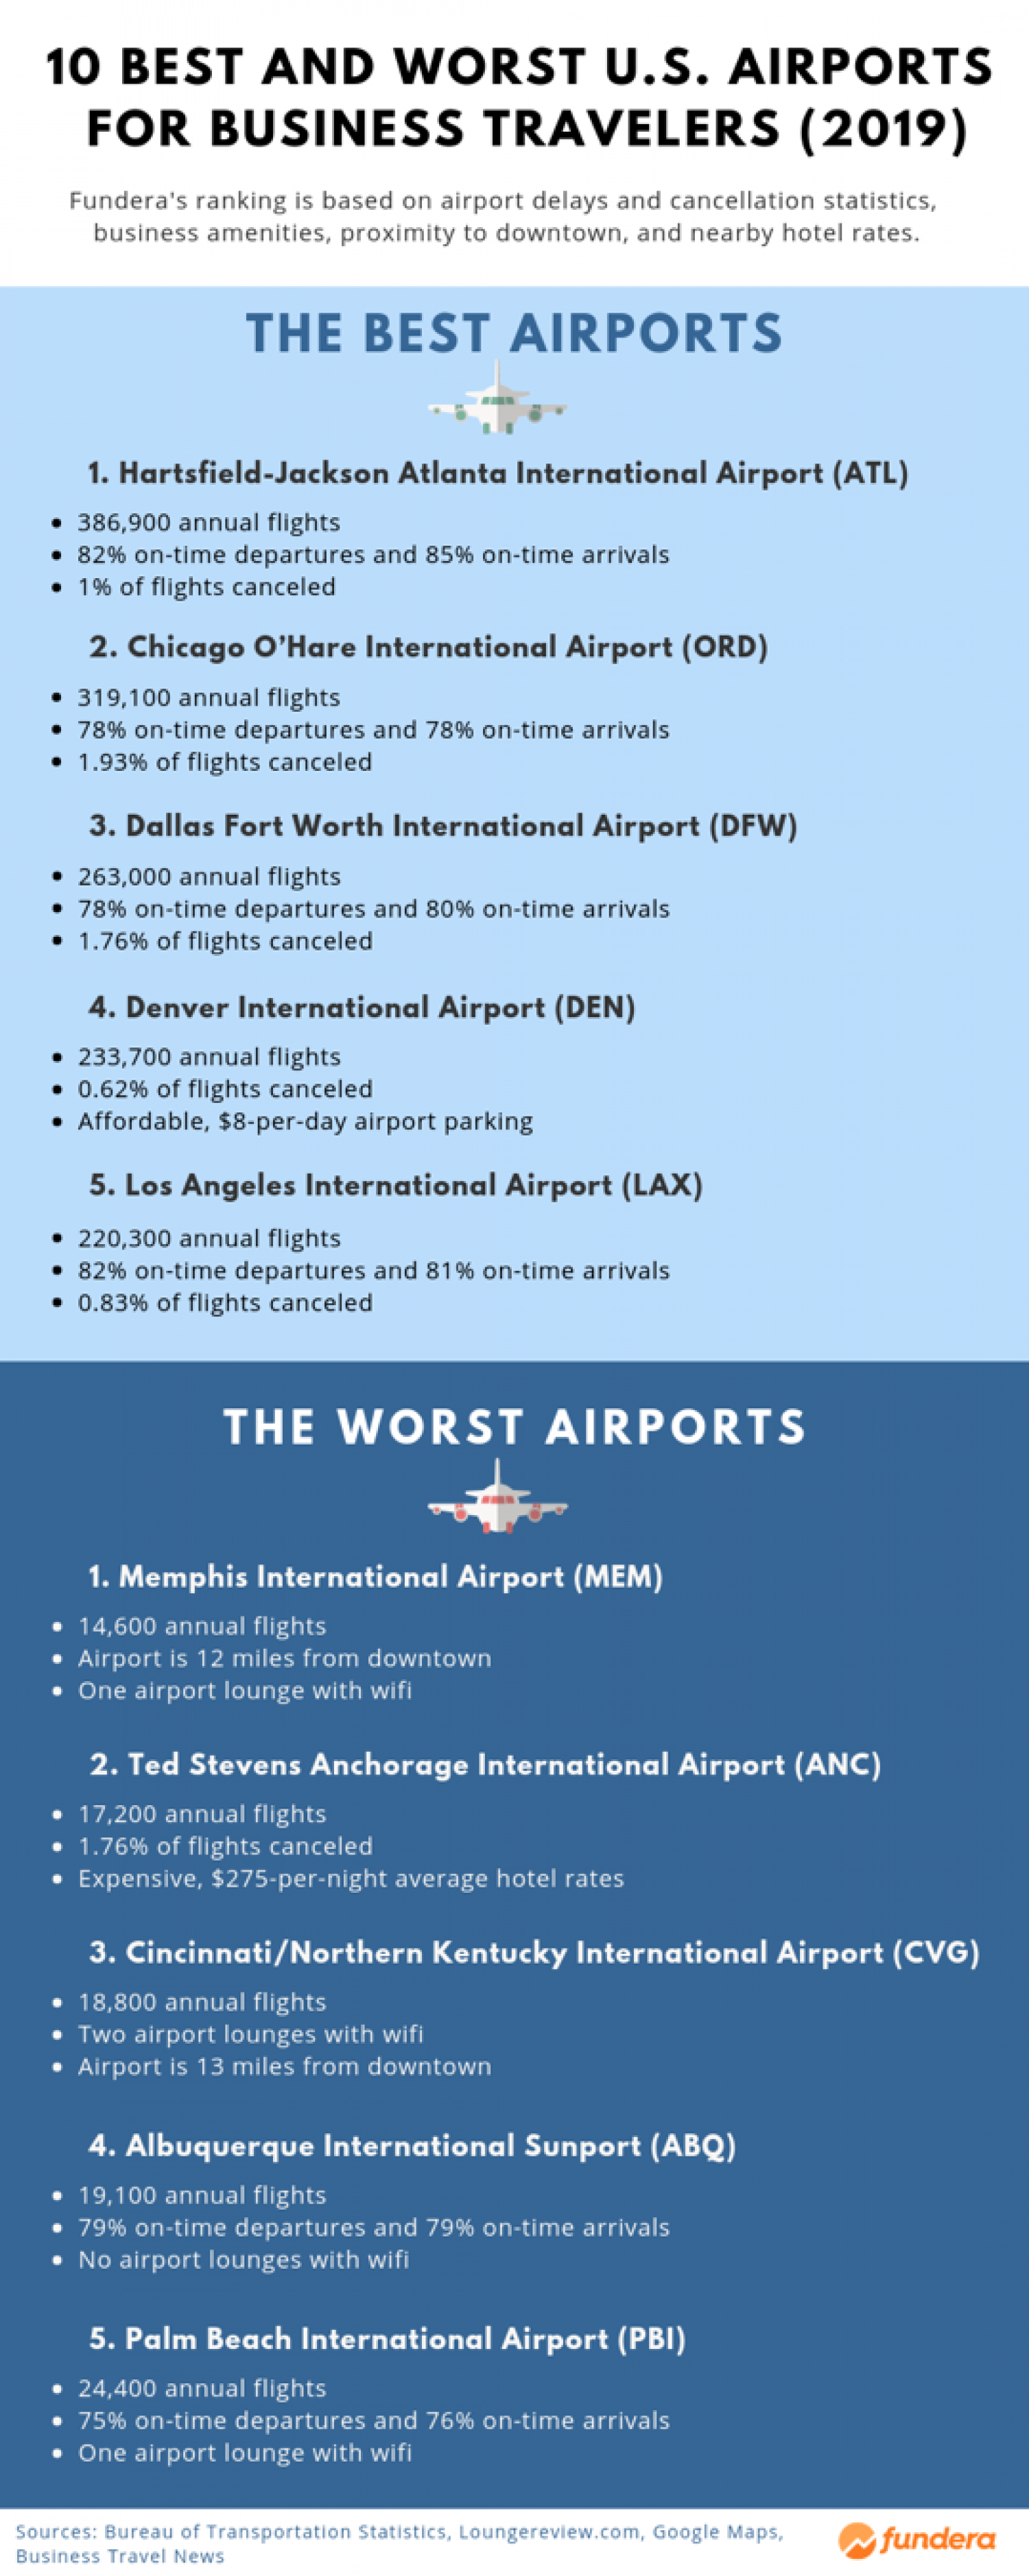 10 Best and Worst U.S. Airports for Business Travelers (2019) Infographic